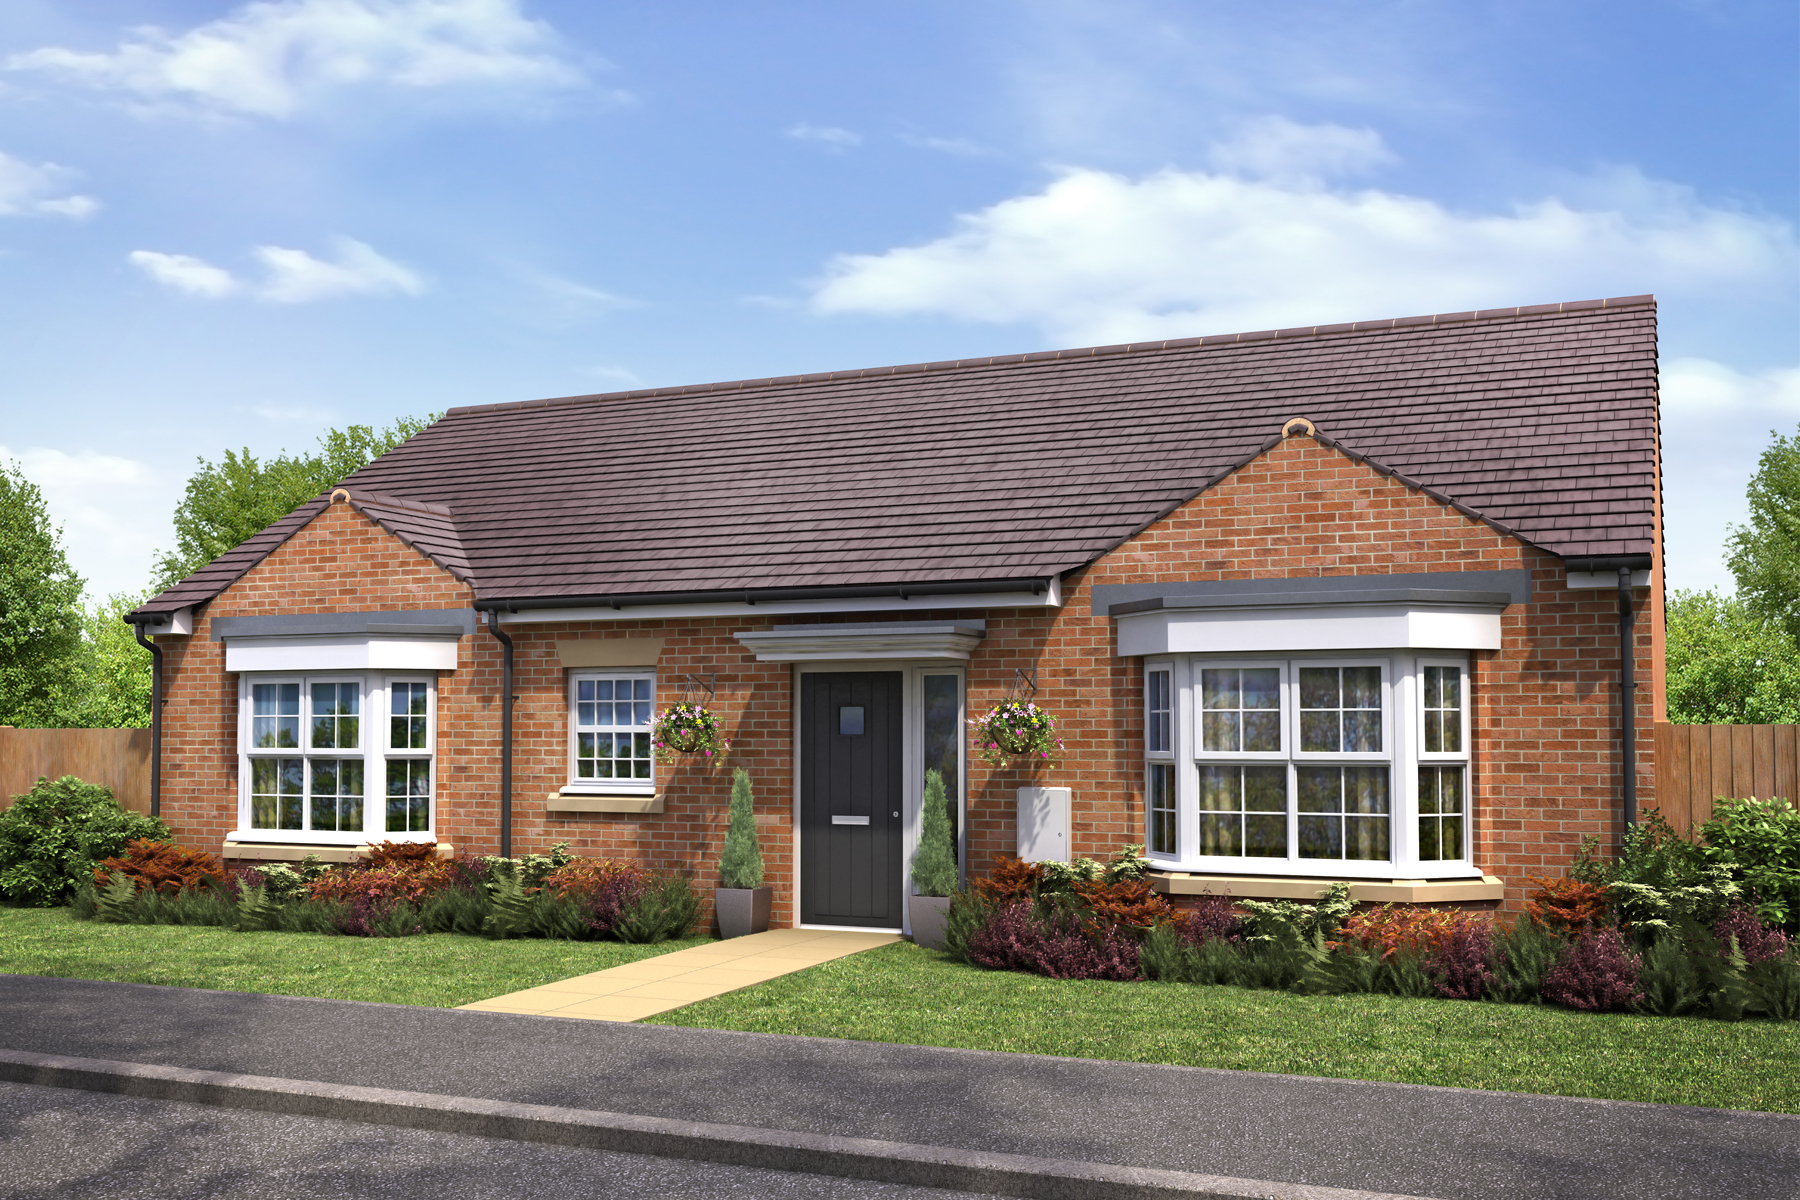 Castle vale taylor wimpey for Bungalow show homes